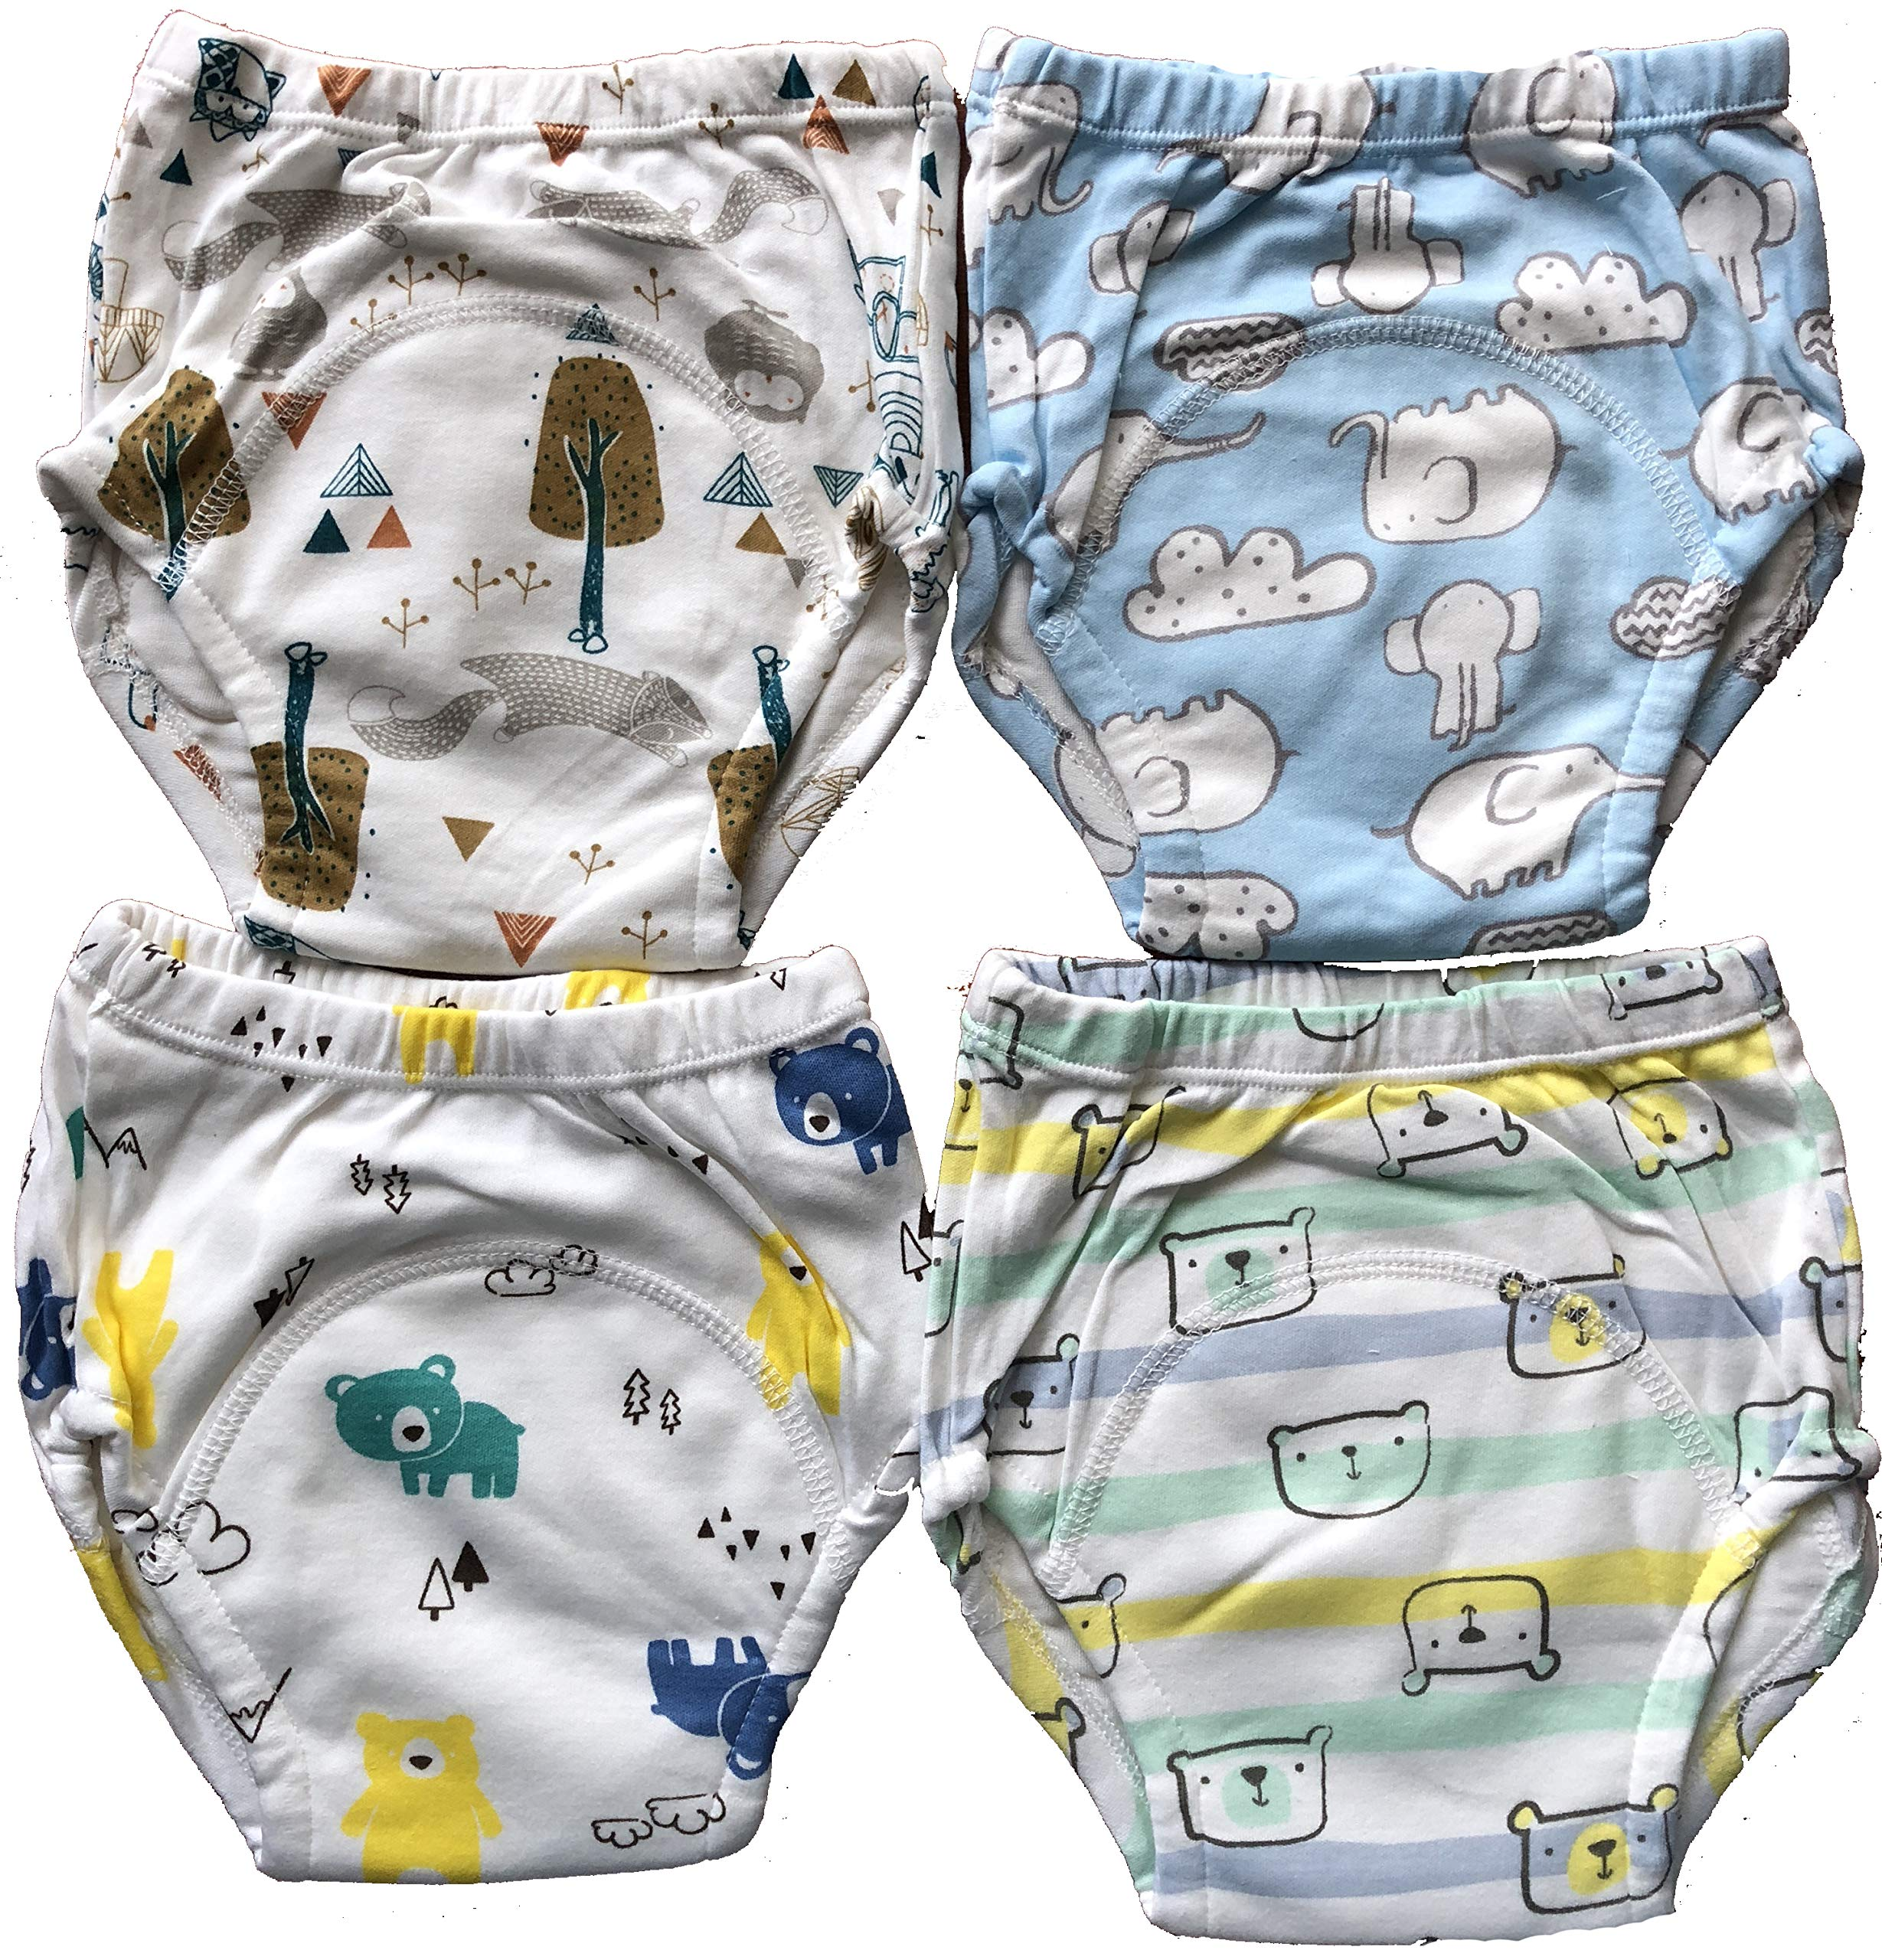 77d80abea847 Best Rated in Toilet Training Pants   Helpful Customer Reviews ...